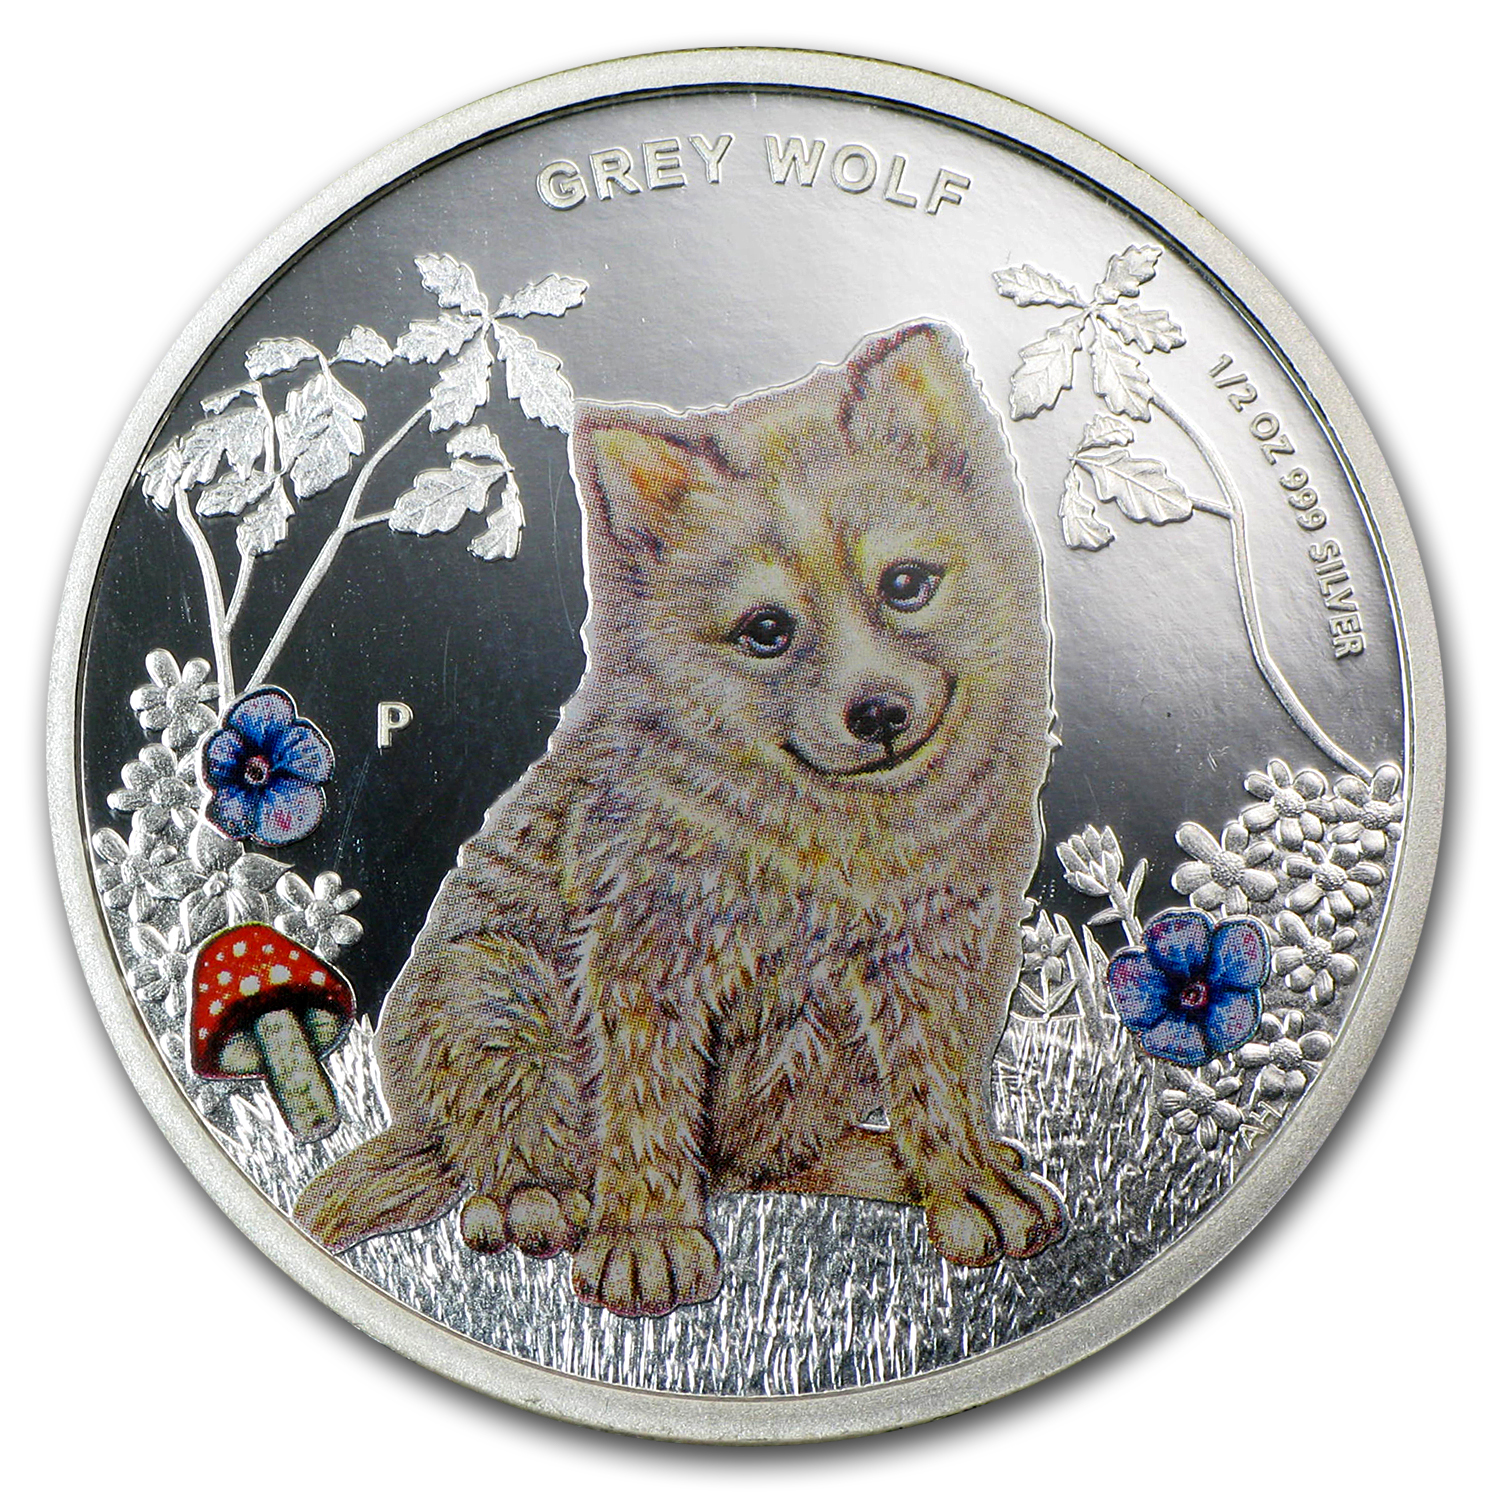 2013 Tuvalu 1/2 oz Proof Silver Forest Babies (Grey Wolf)